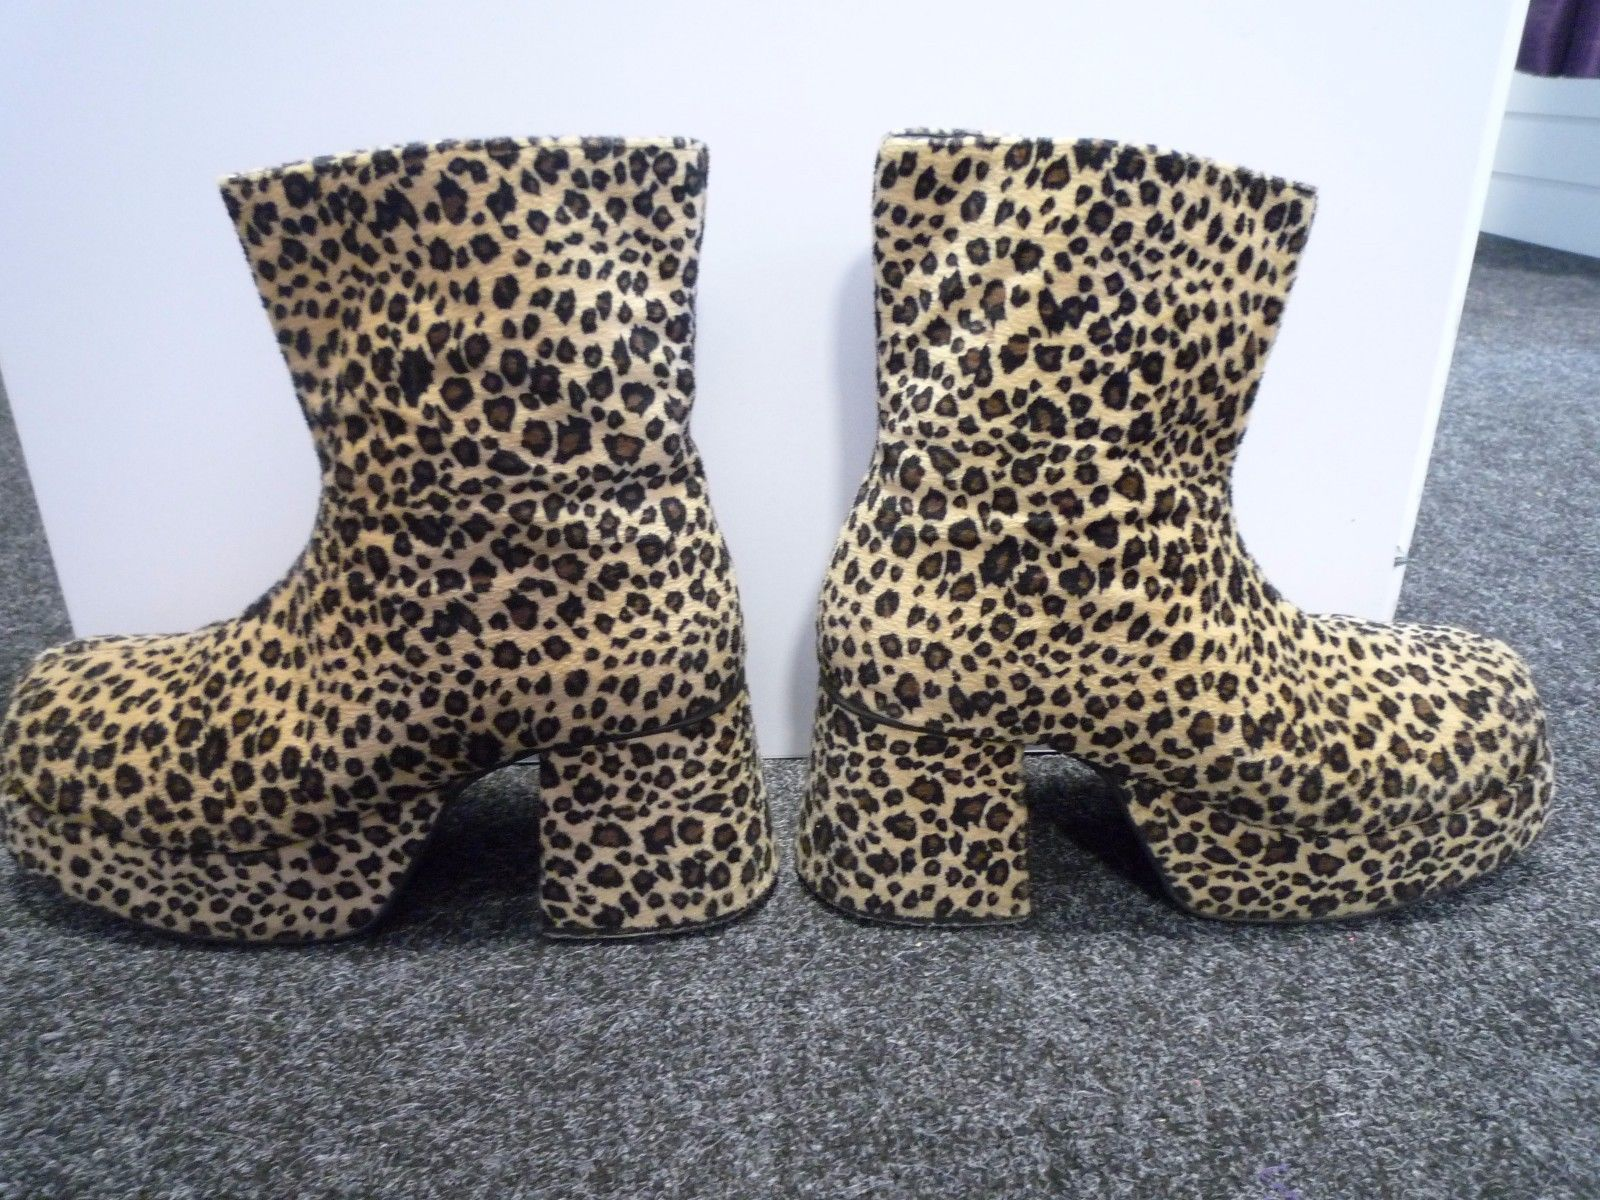 Primary image for Gents Leopard Fur  Platform Boots - 70's style - UK size 13